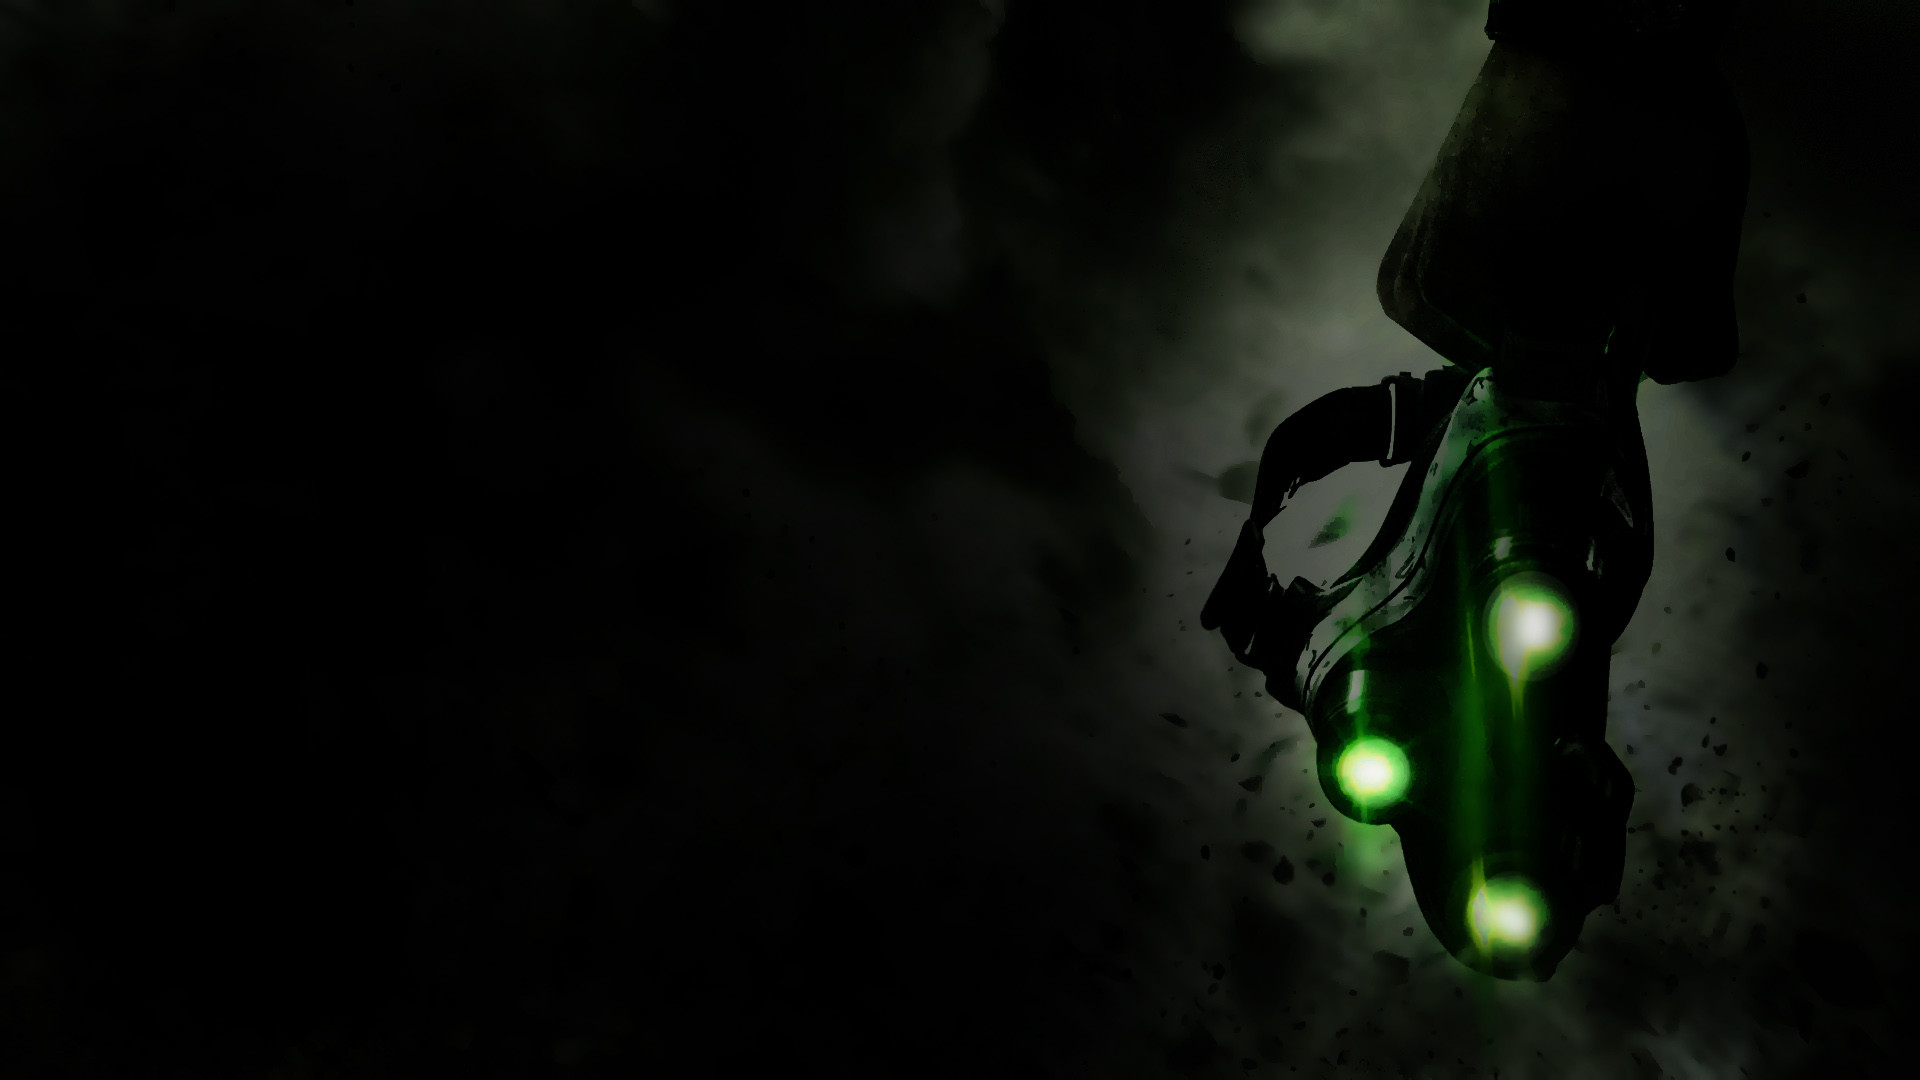 Hd Goggles Wallpaper Splinter Cell Wallpapers 82 Images